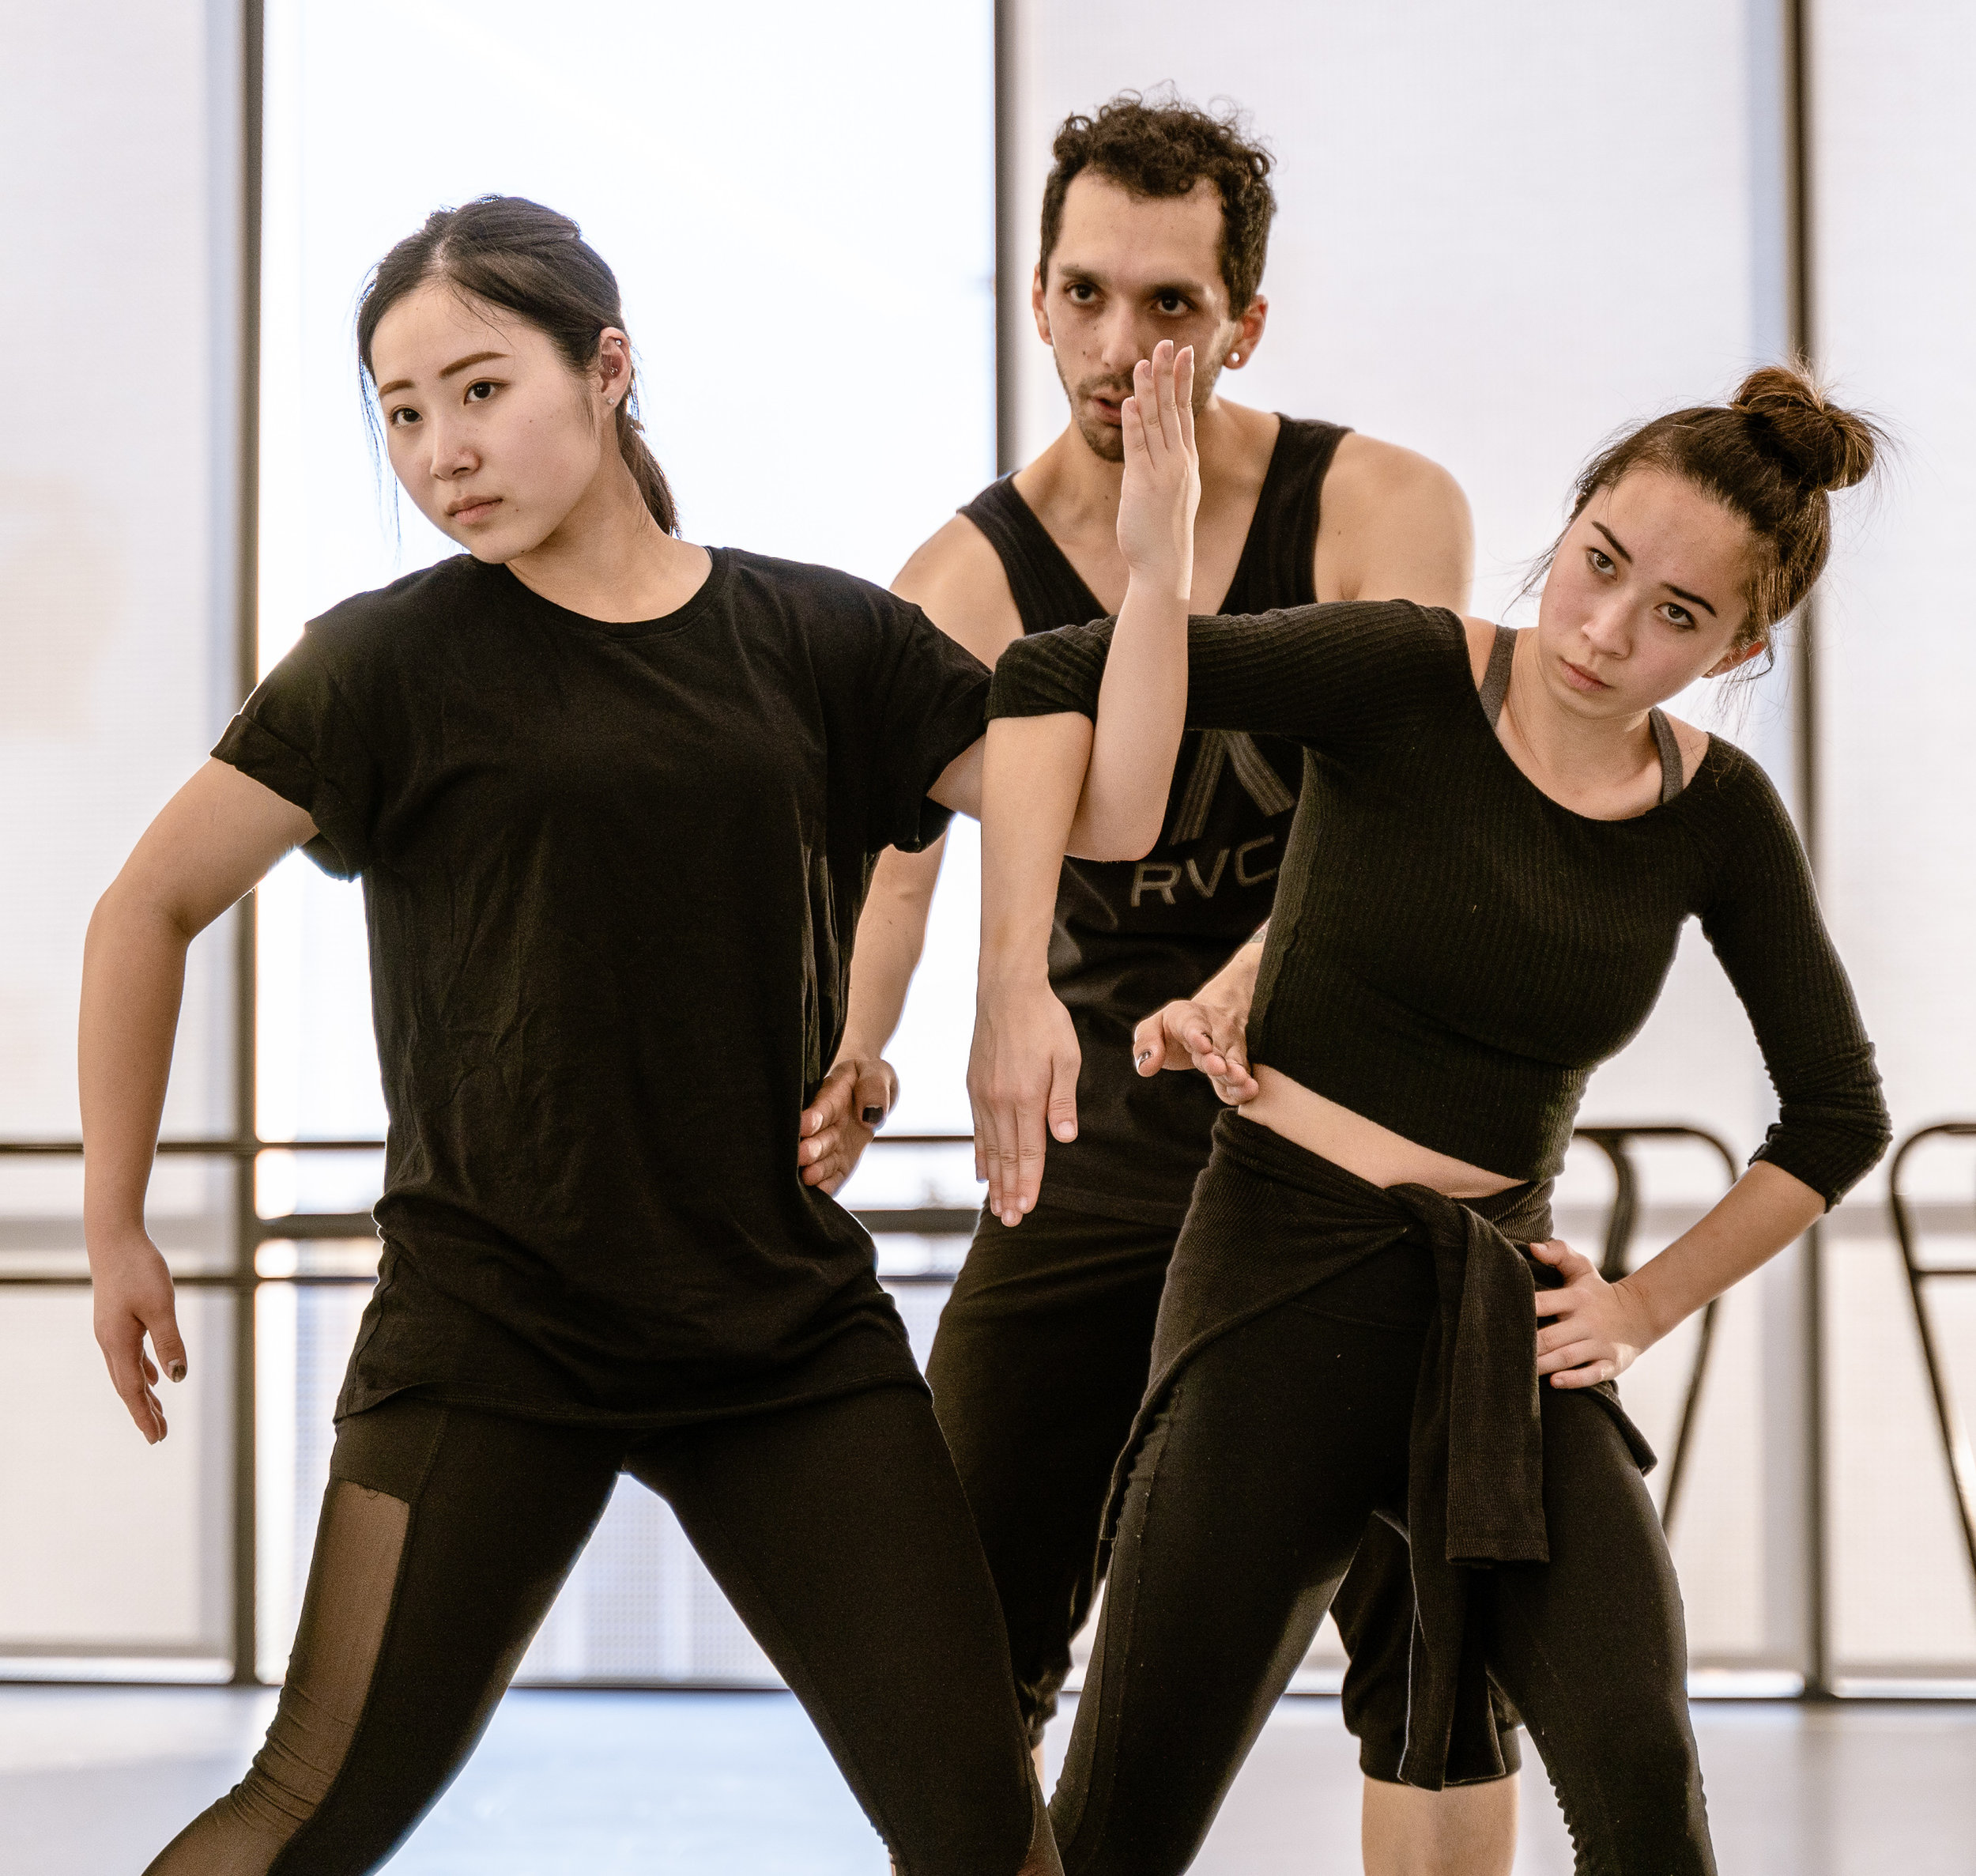 """Student choreographer Erik Fine, 27, from Chicago, works with SMC dance major Yurino Niyama (playing Dante's Beatrice), 19, from Fukuoka, Japan, and SMC dance and chemistry major Tiffany Dong (playing Greed), 20, from San Francisco, in a rehearsal for Fine's new work """"seven"""" at SMC's Core Performance Center on Thursday, March 7, 2019. The work is titled with the number seven written in tally marks. In this section of the dance Beatrice and Greed (Niyama and Dong) dance a duet. """"seven"""" refers to the seven deadly sins and Dante's _Inferno_. In Fine's video game inspired telling, the deadly sins are all game bosses. """"seven"""" will premiere at Synapse Dance Theater at the Broad Stage at SMC's Performing Arts Center campus on Friday and Saturday, May 24 and 25. (Glenn Zucman/The Corsair)"""